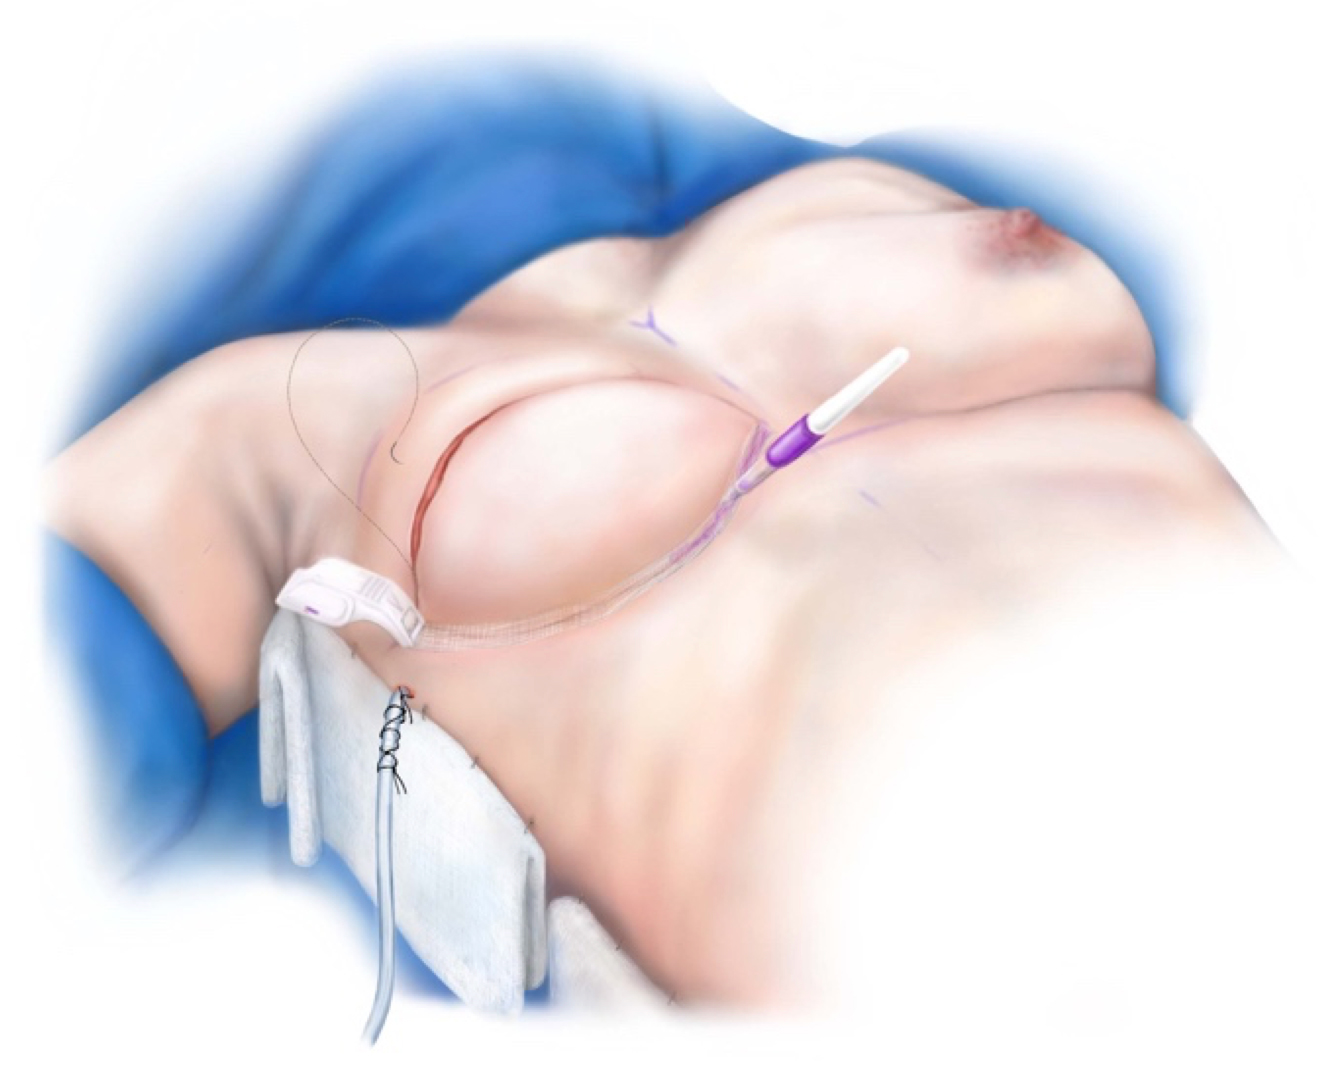 Breast Reconstruction - Closed and Dressed